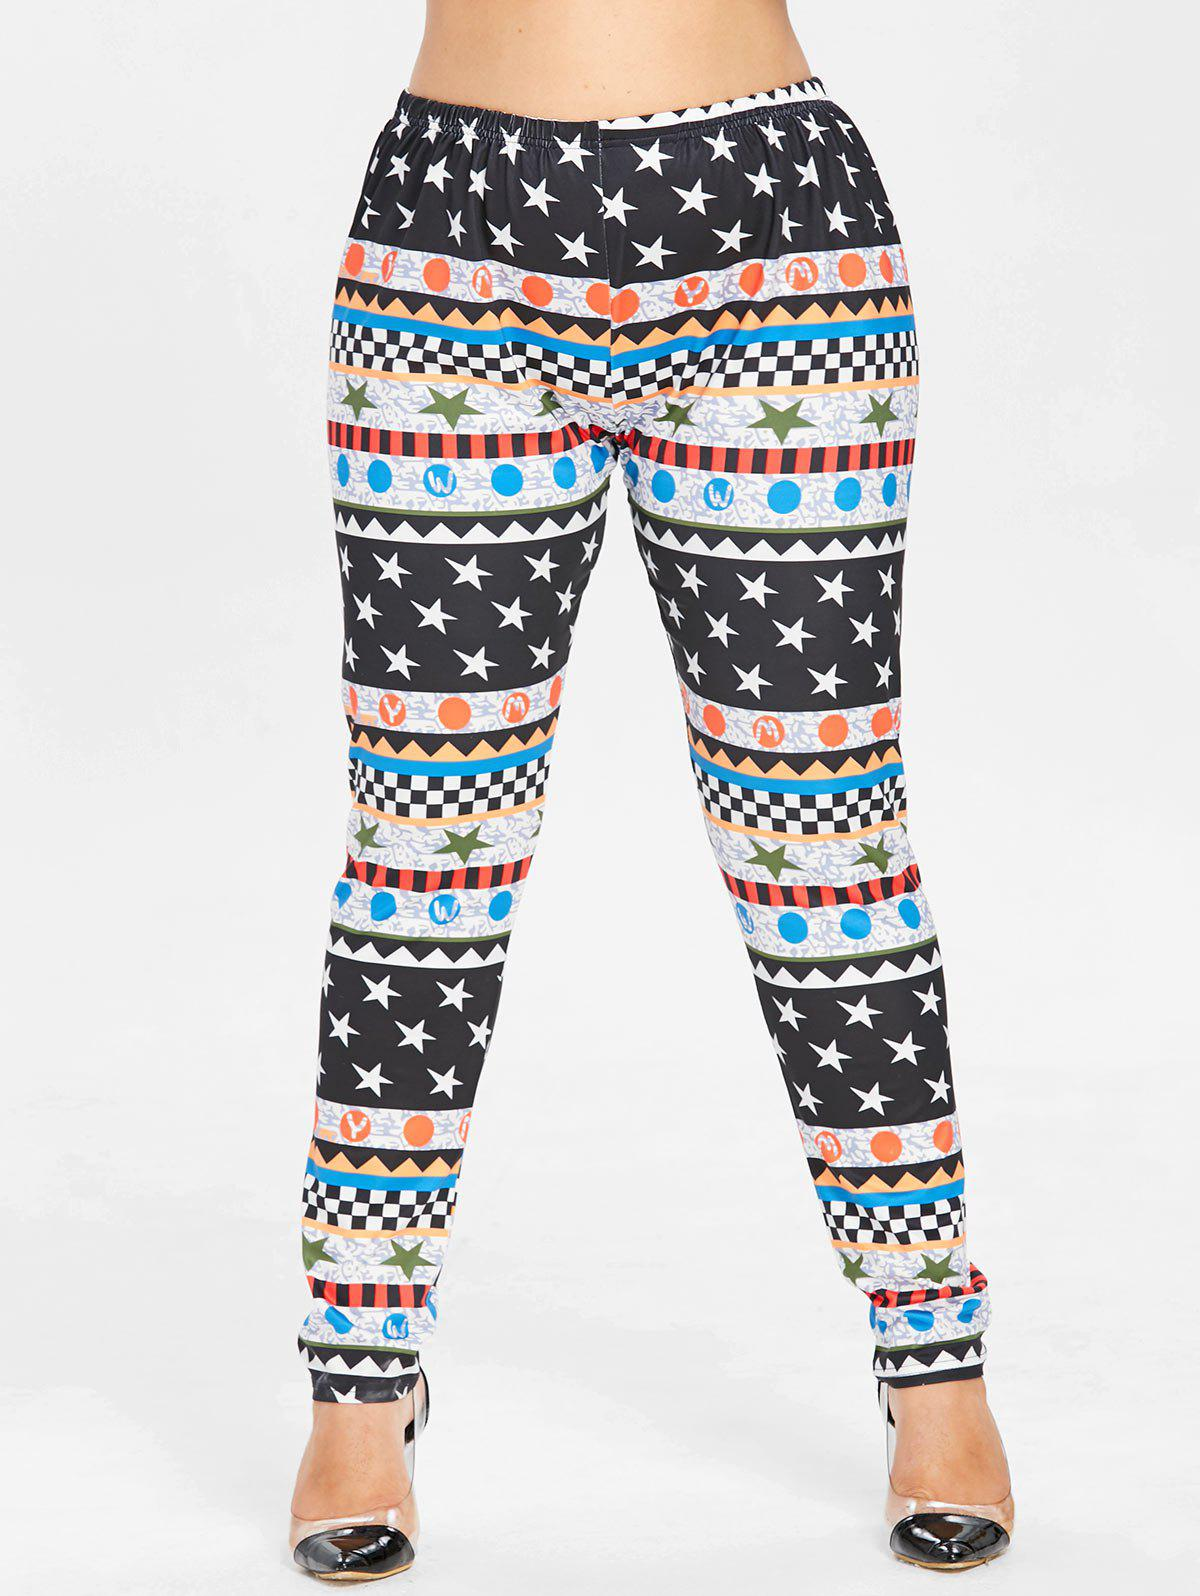 9f3333ef54505 2019 Plus Size Graphic Christmas Leggings